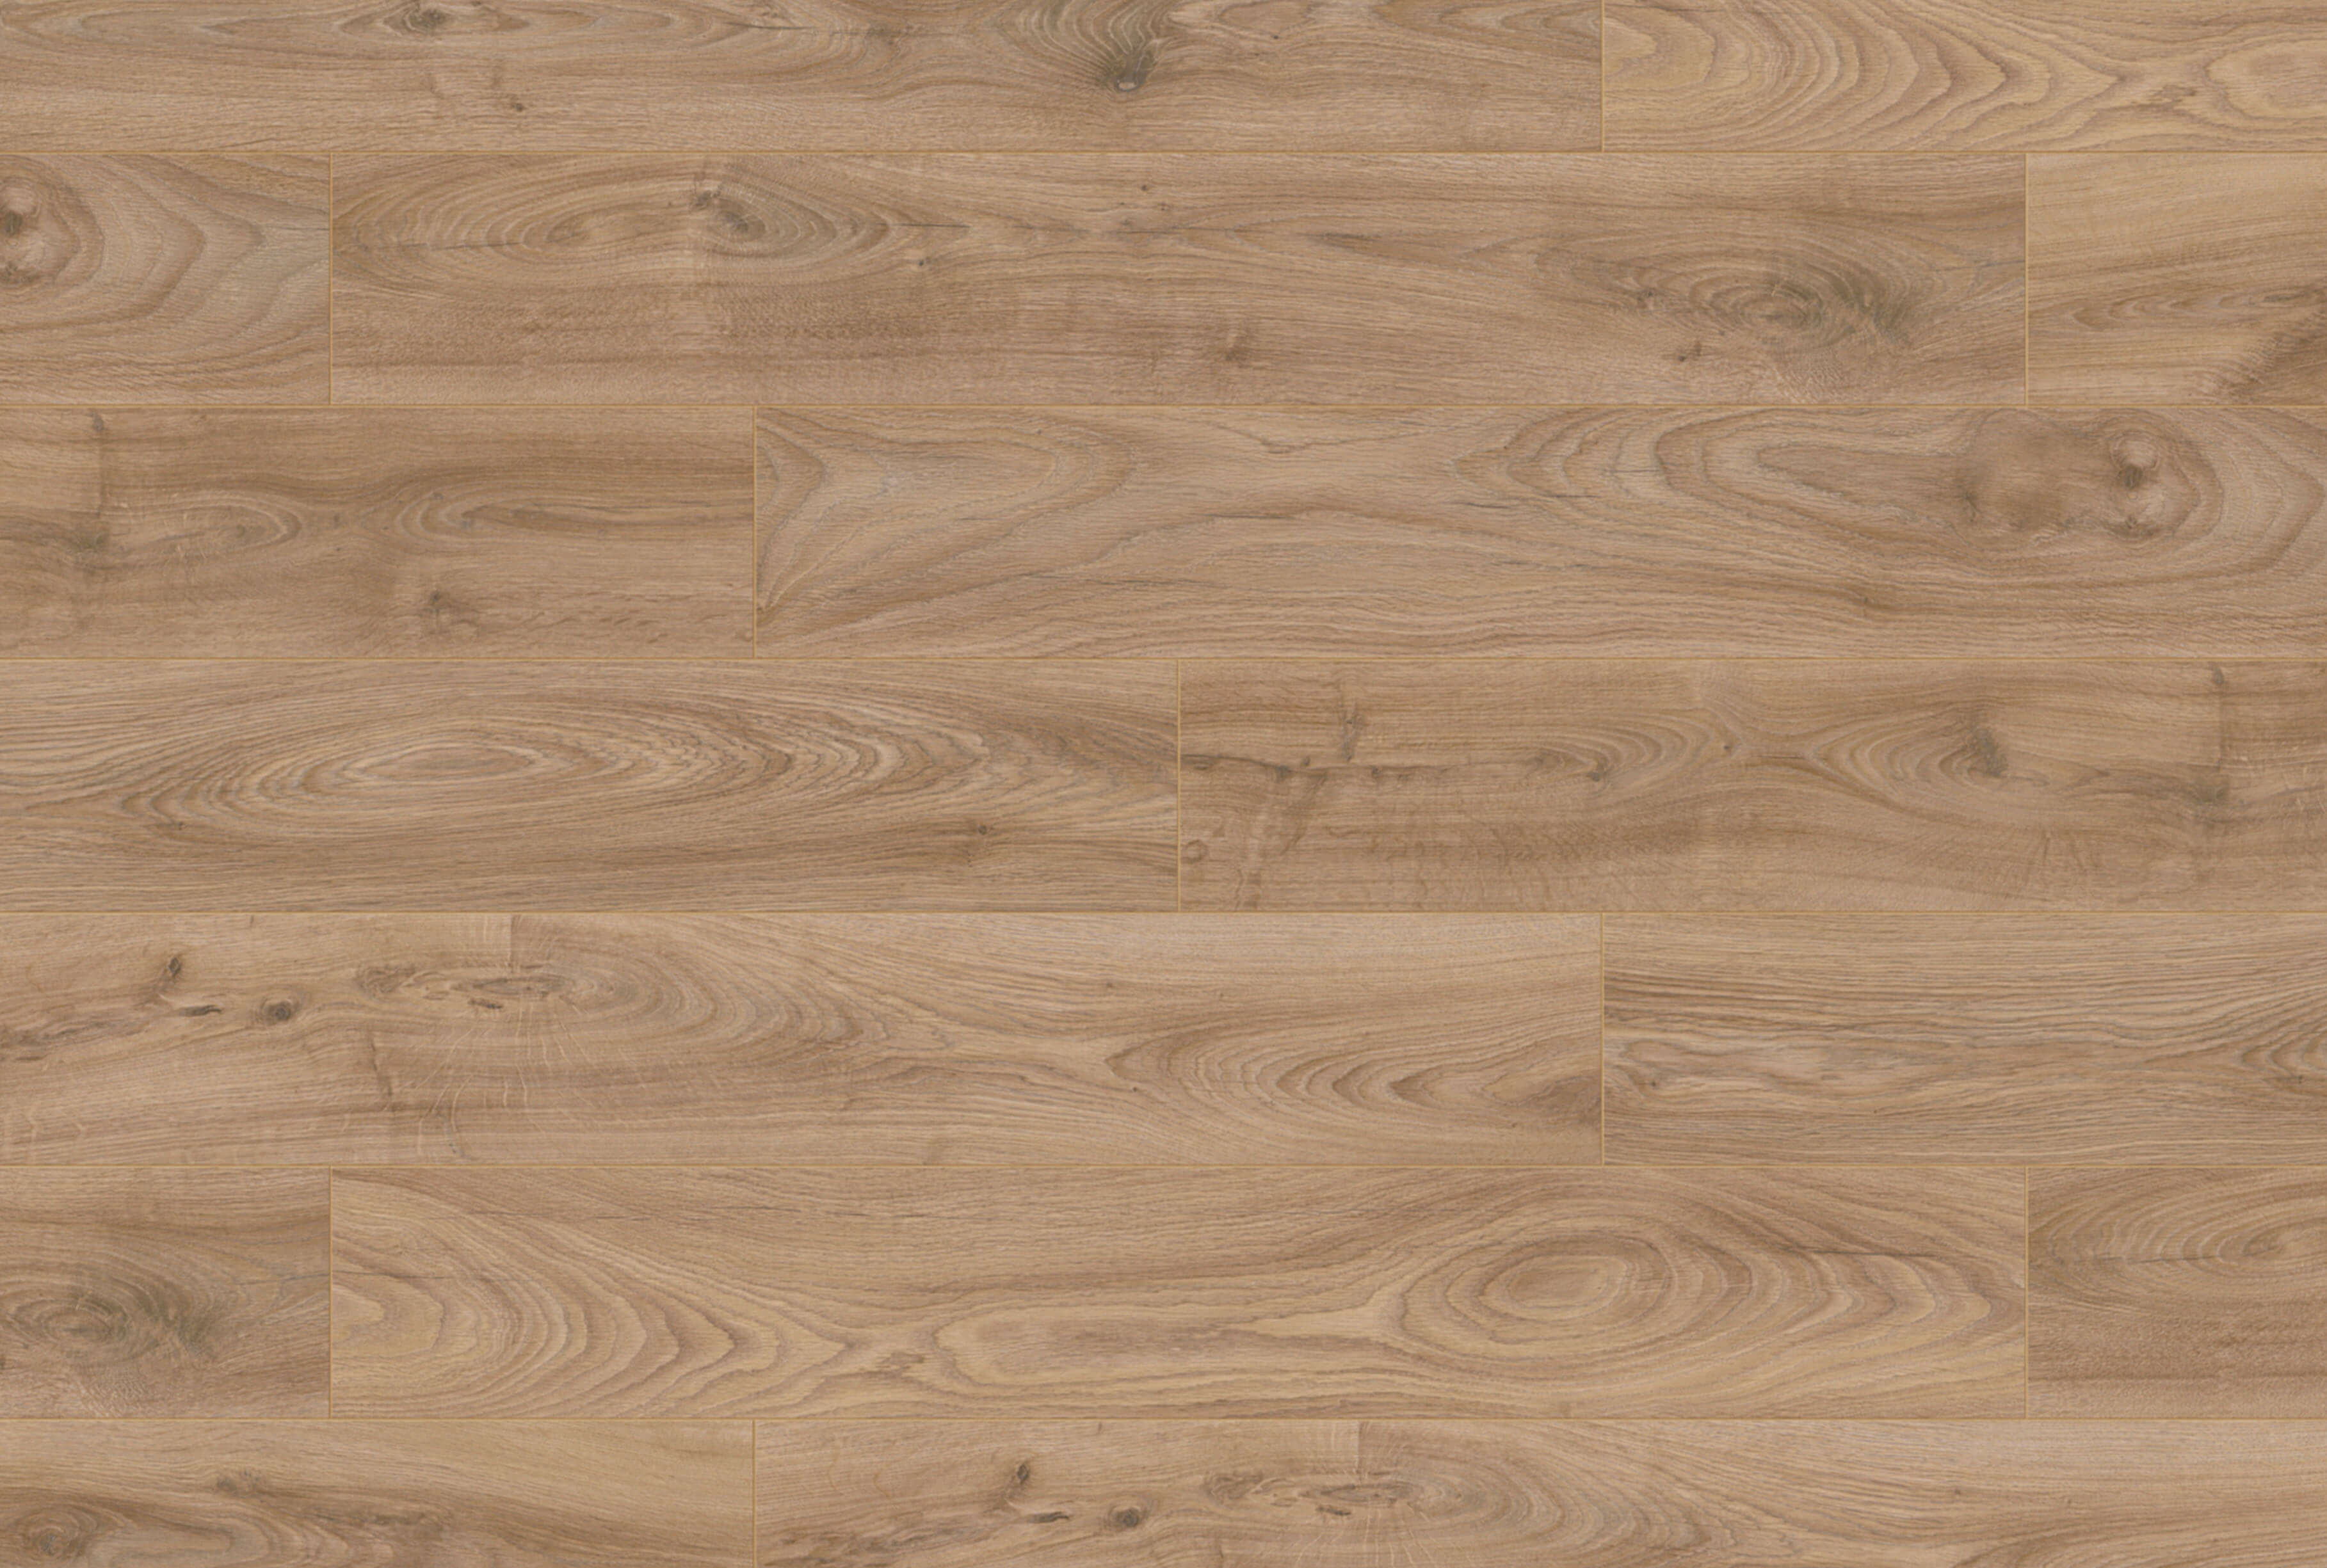 1519 · Victoria Oak<br>Format size: W 192 mm x L 1285 mm<br>Structure: Historic Oak, Authentic Embossed